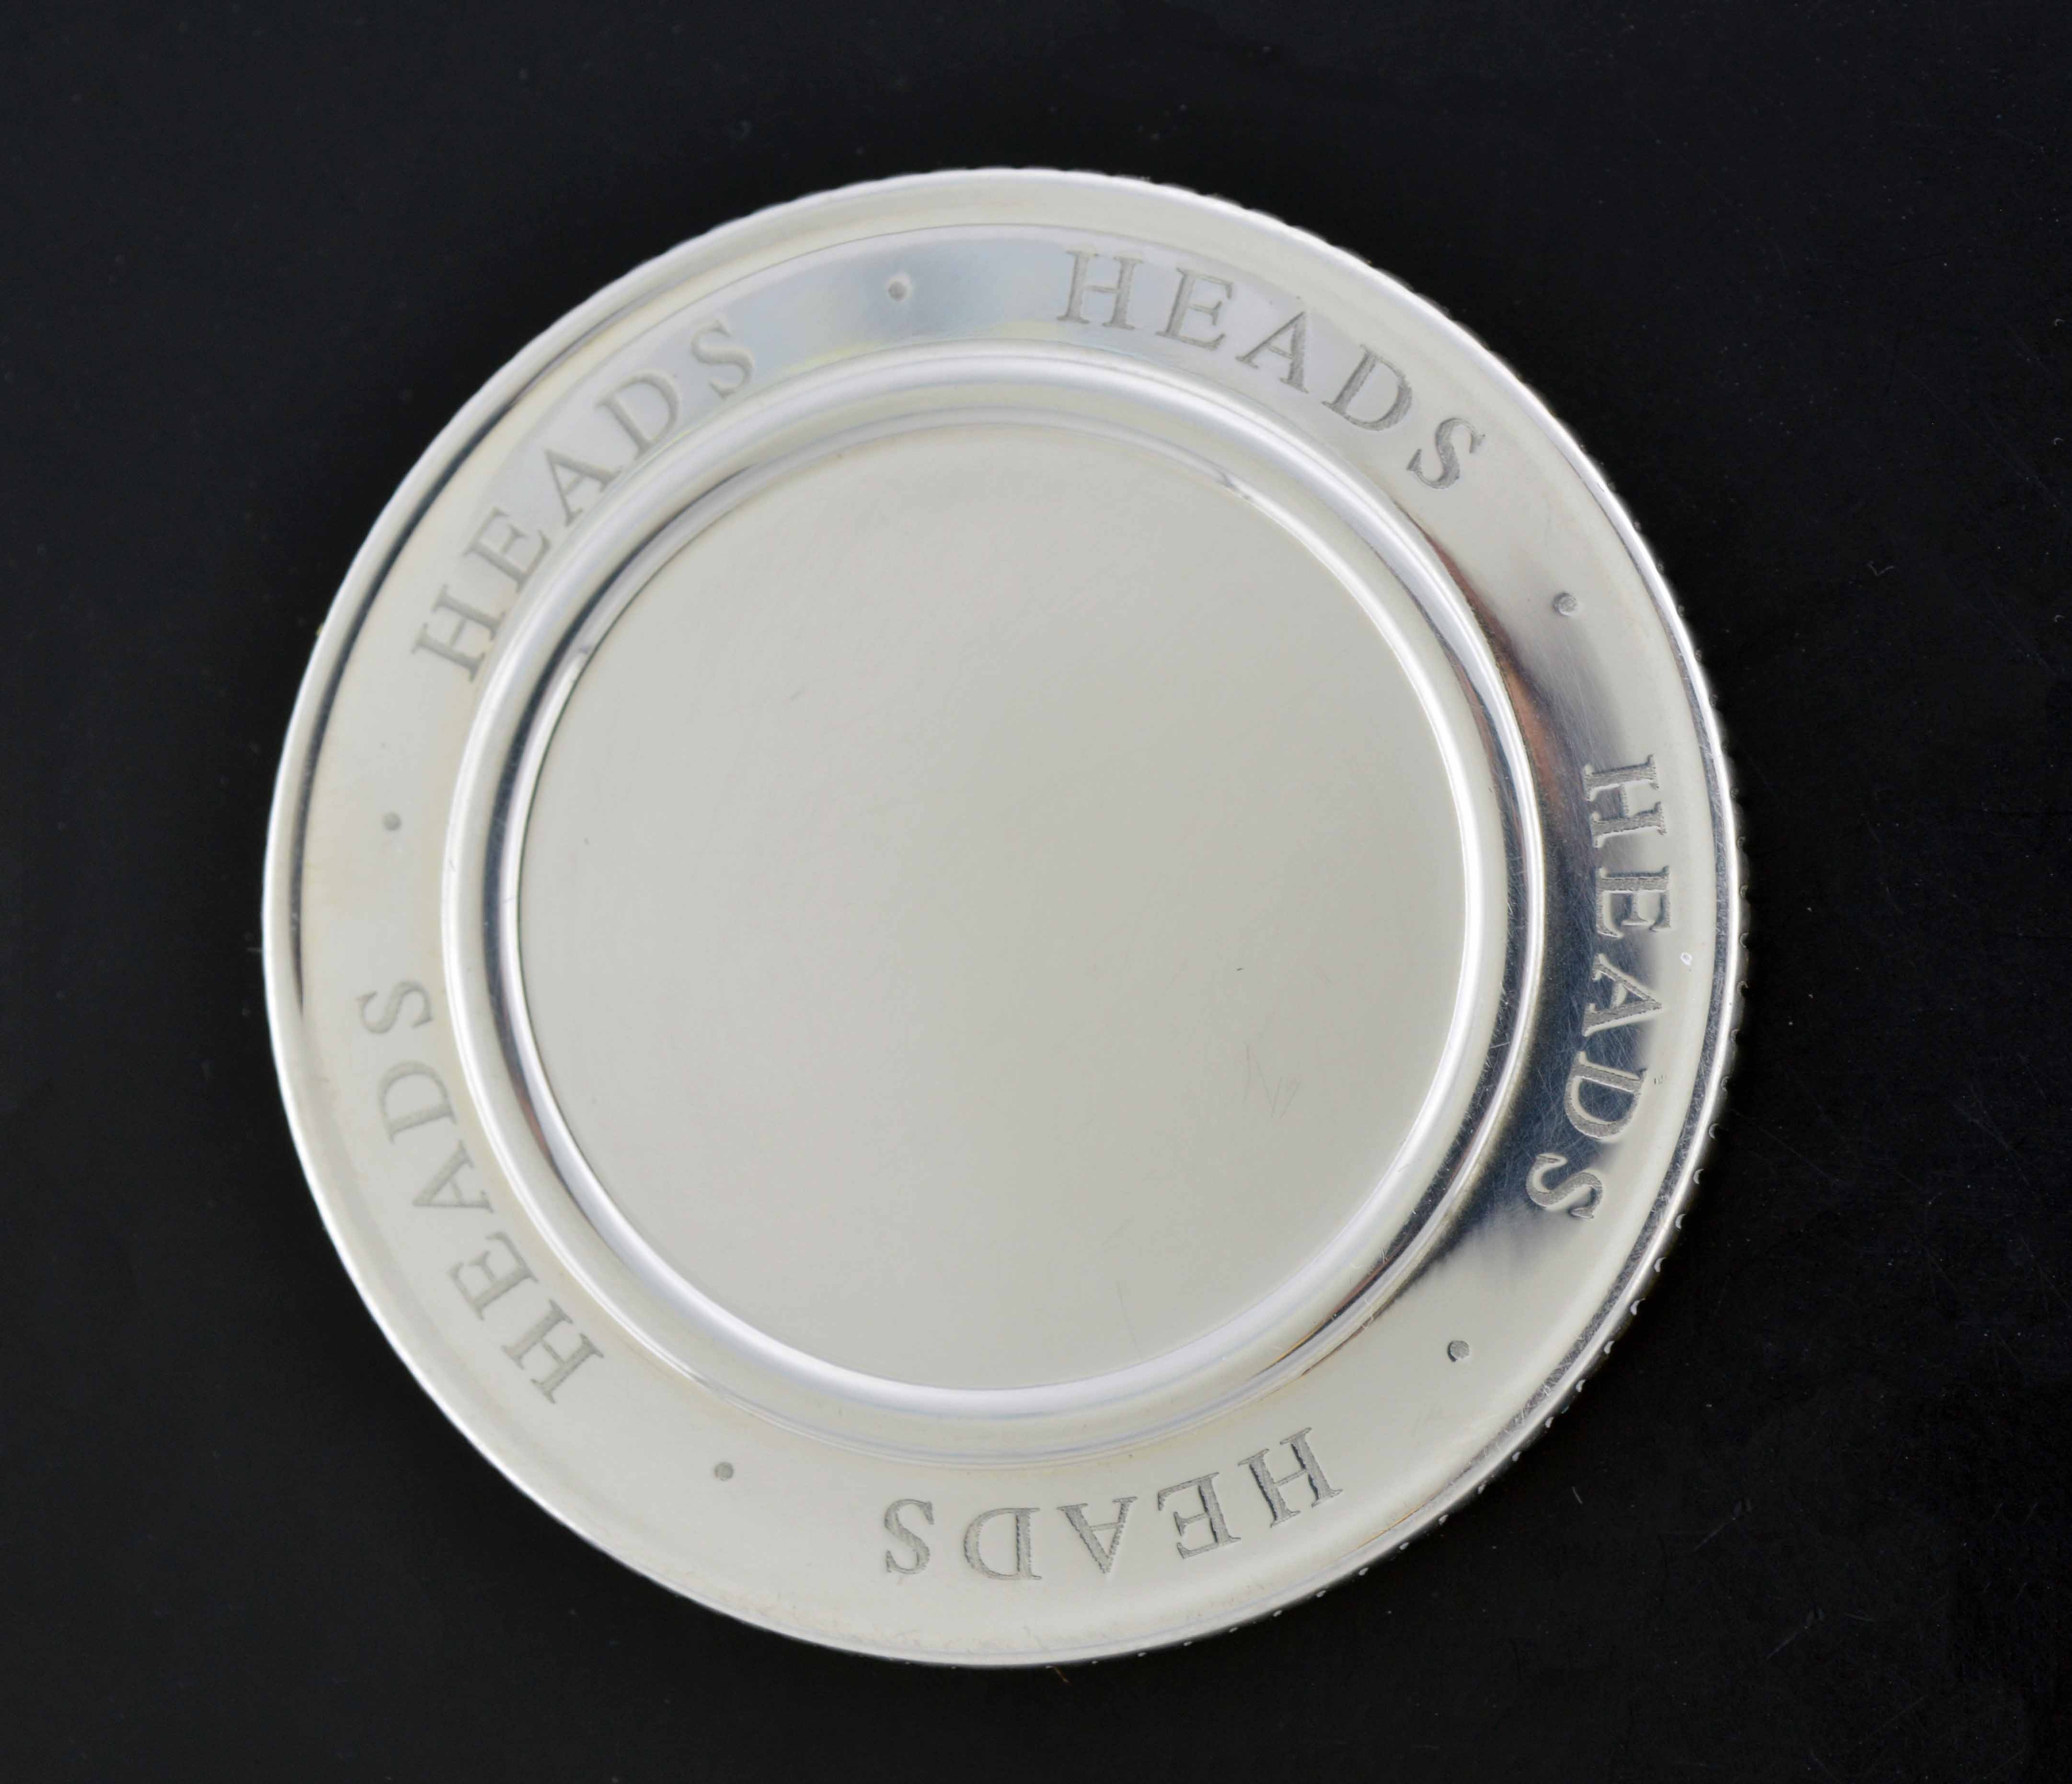 tiffany heads tails coin